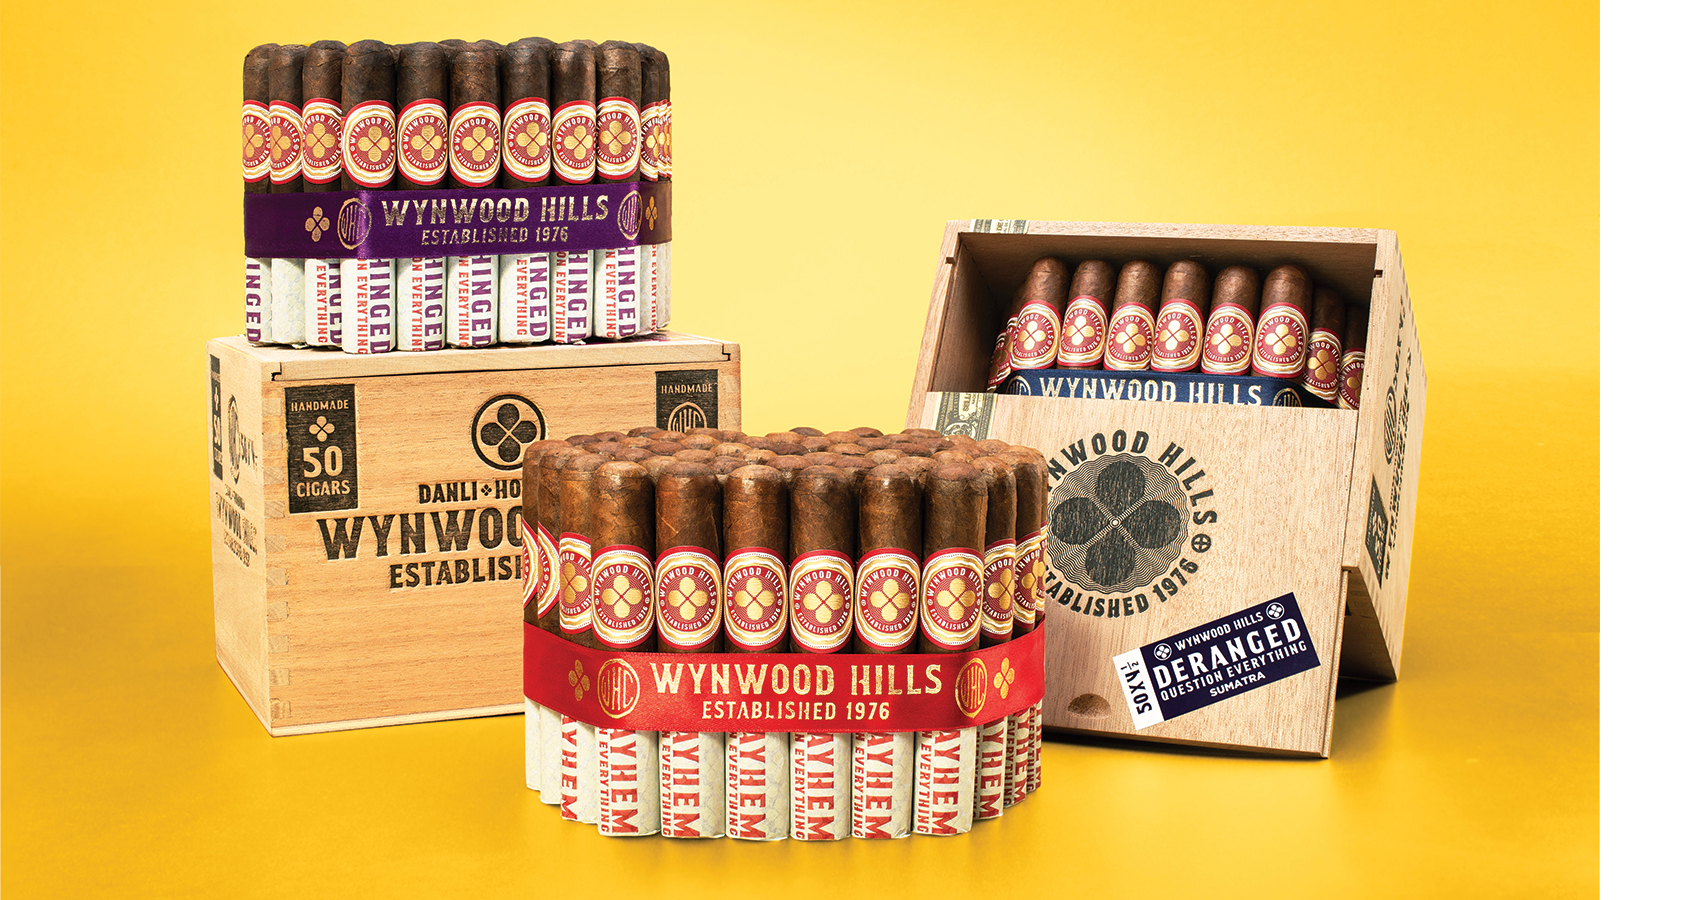 Wynwood Hills Cigars